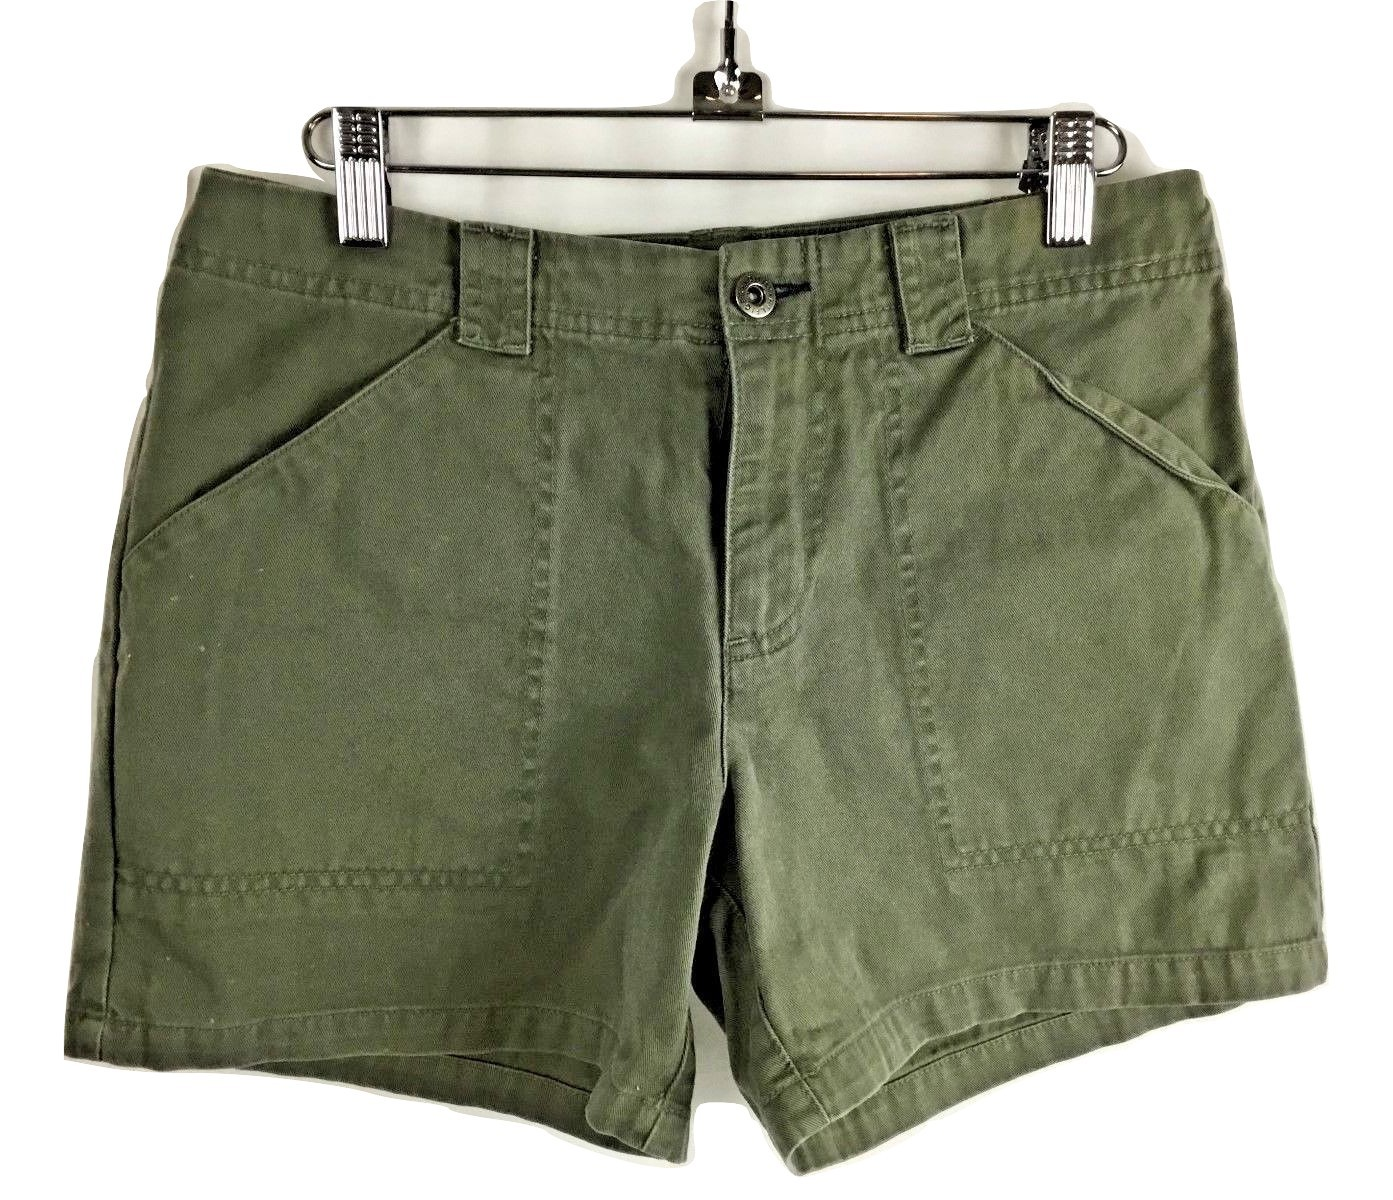 TOMMY HILFIGER Jeans Women Chino Olive Moss Green Camo 4 Pocket Shorts Size 2 - $39.95